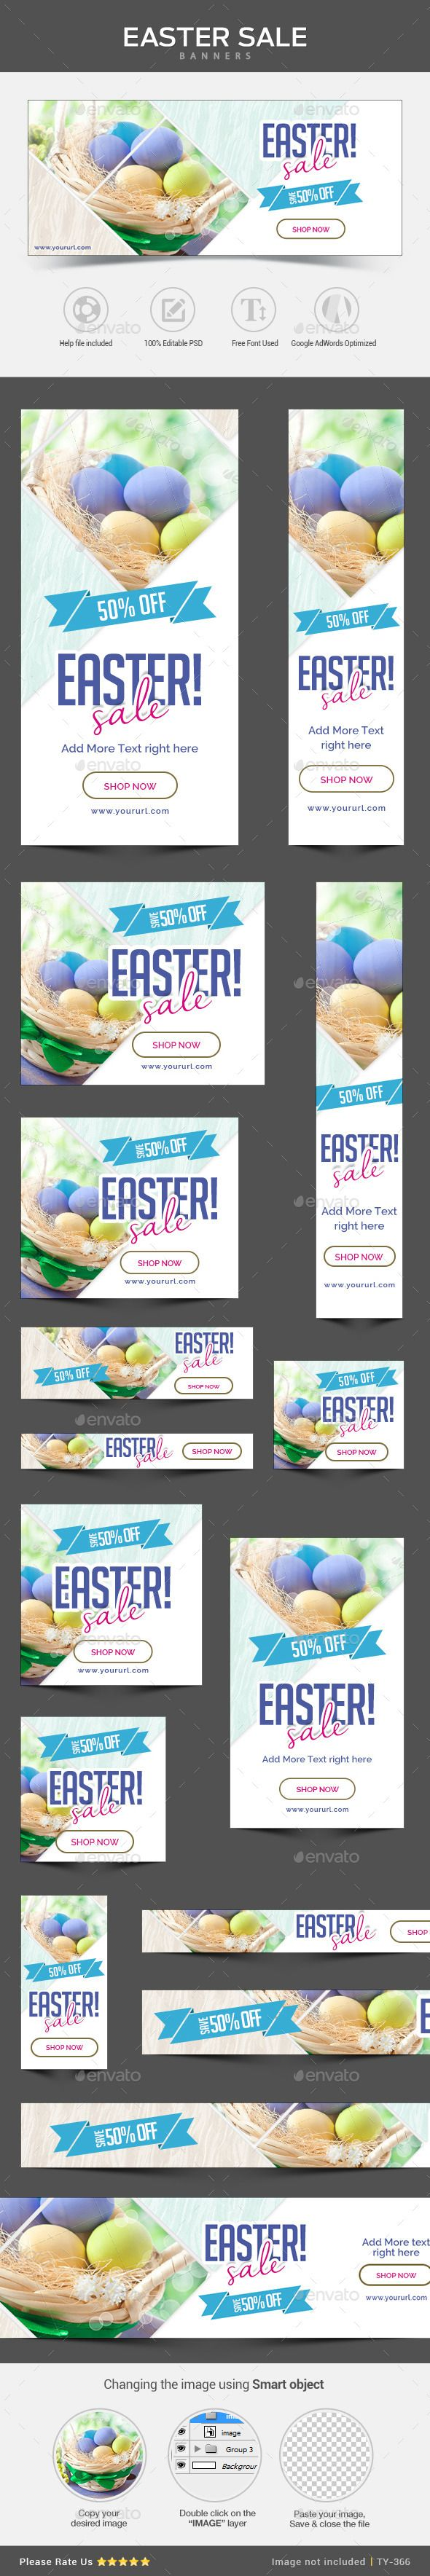 Easter Sale Banners (Photoshop PSD, CS3, adroll, animated banner, banner pack, banner set, banners, bunny, business, coupon, deal, discount, easter sale, egg, flat design, gif banner, google adwords, Google adwords banner, marketing, metro design, multi purpose, promotion, promotions, retargeting, sales, social media, studio, web banner)